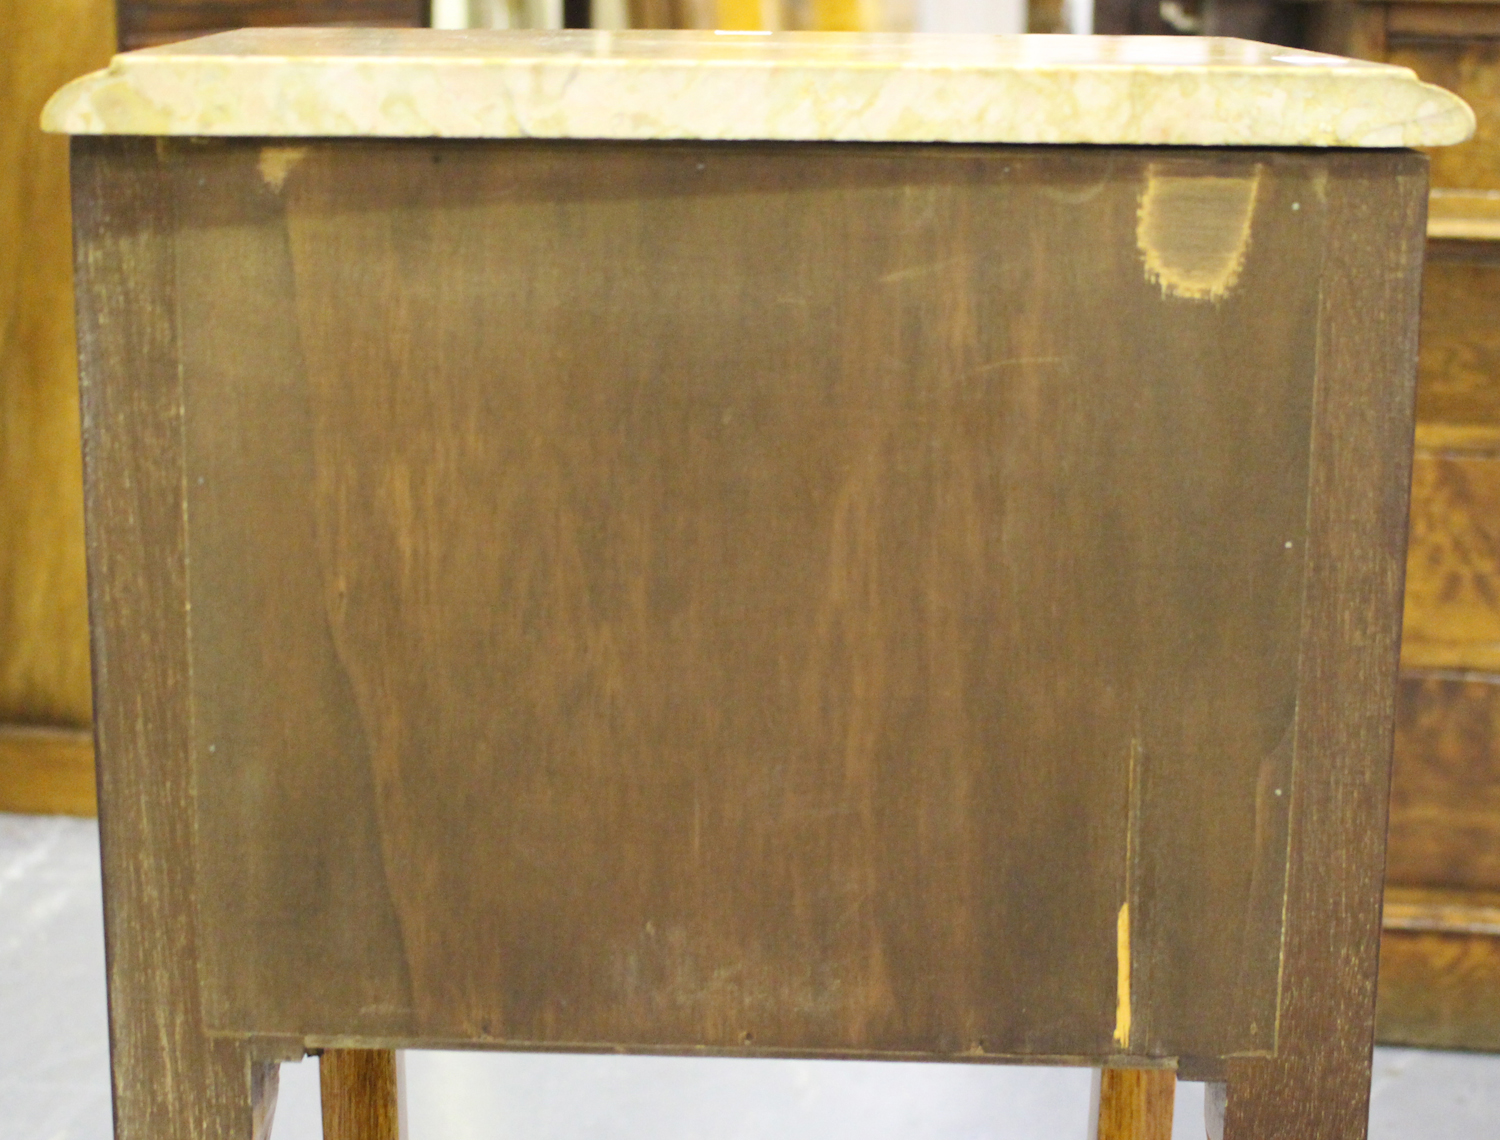 A pair of 20th century French kingwood and gilt metal mounted, marble topped bedside chests, each - Image 2 of 11